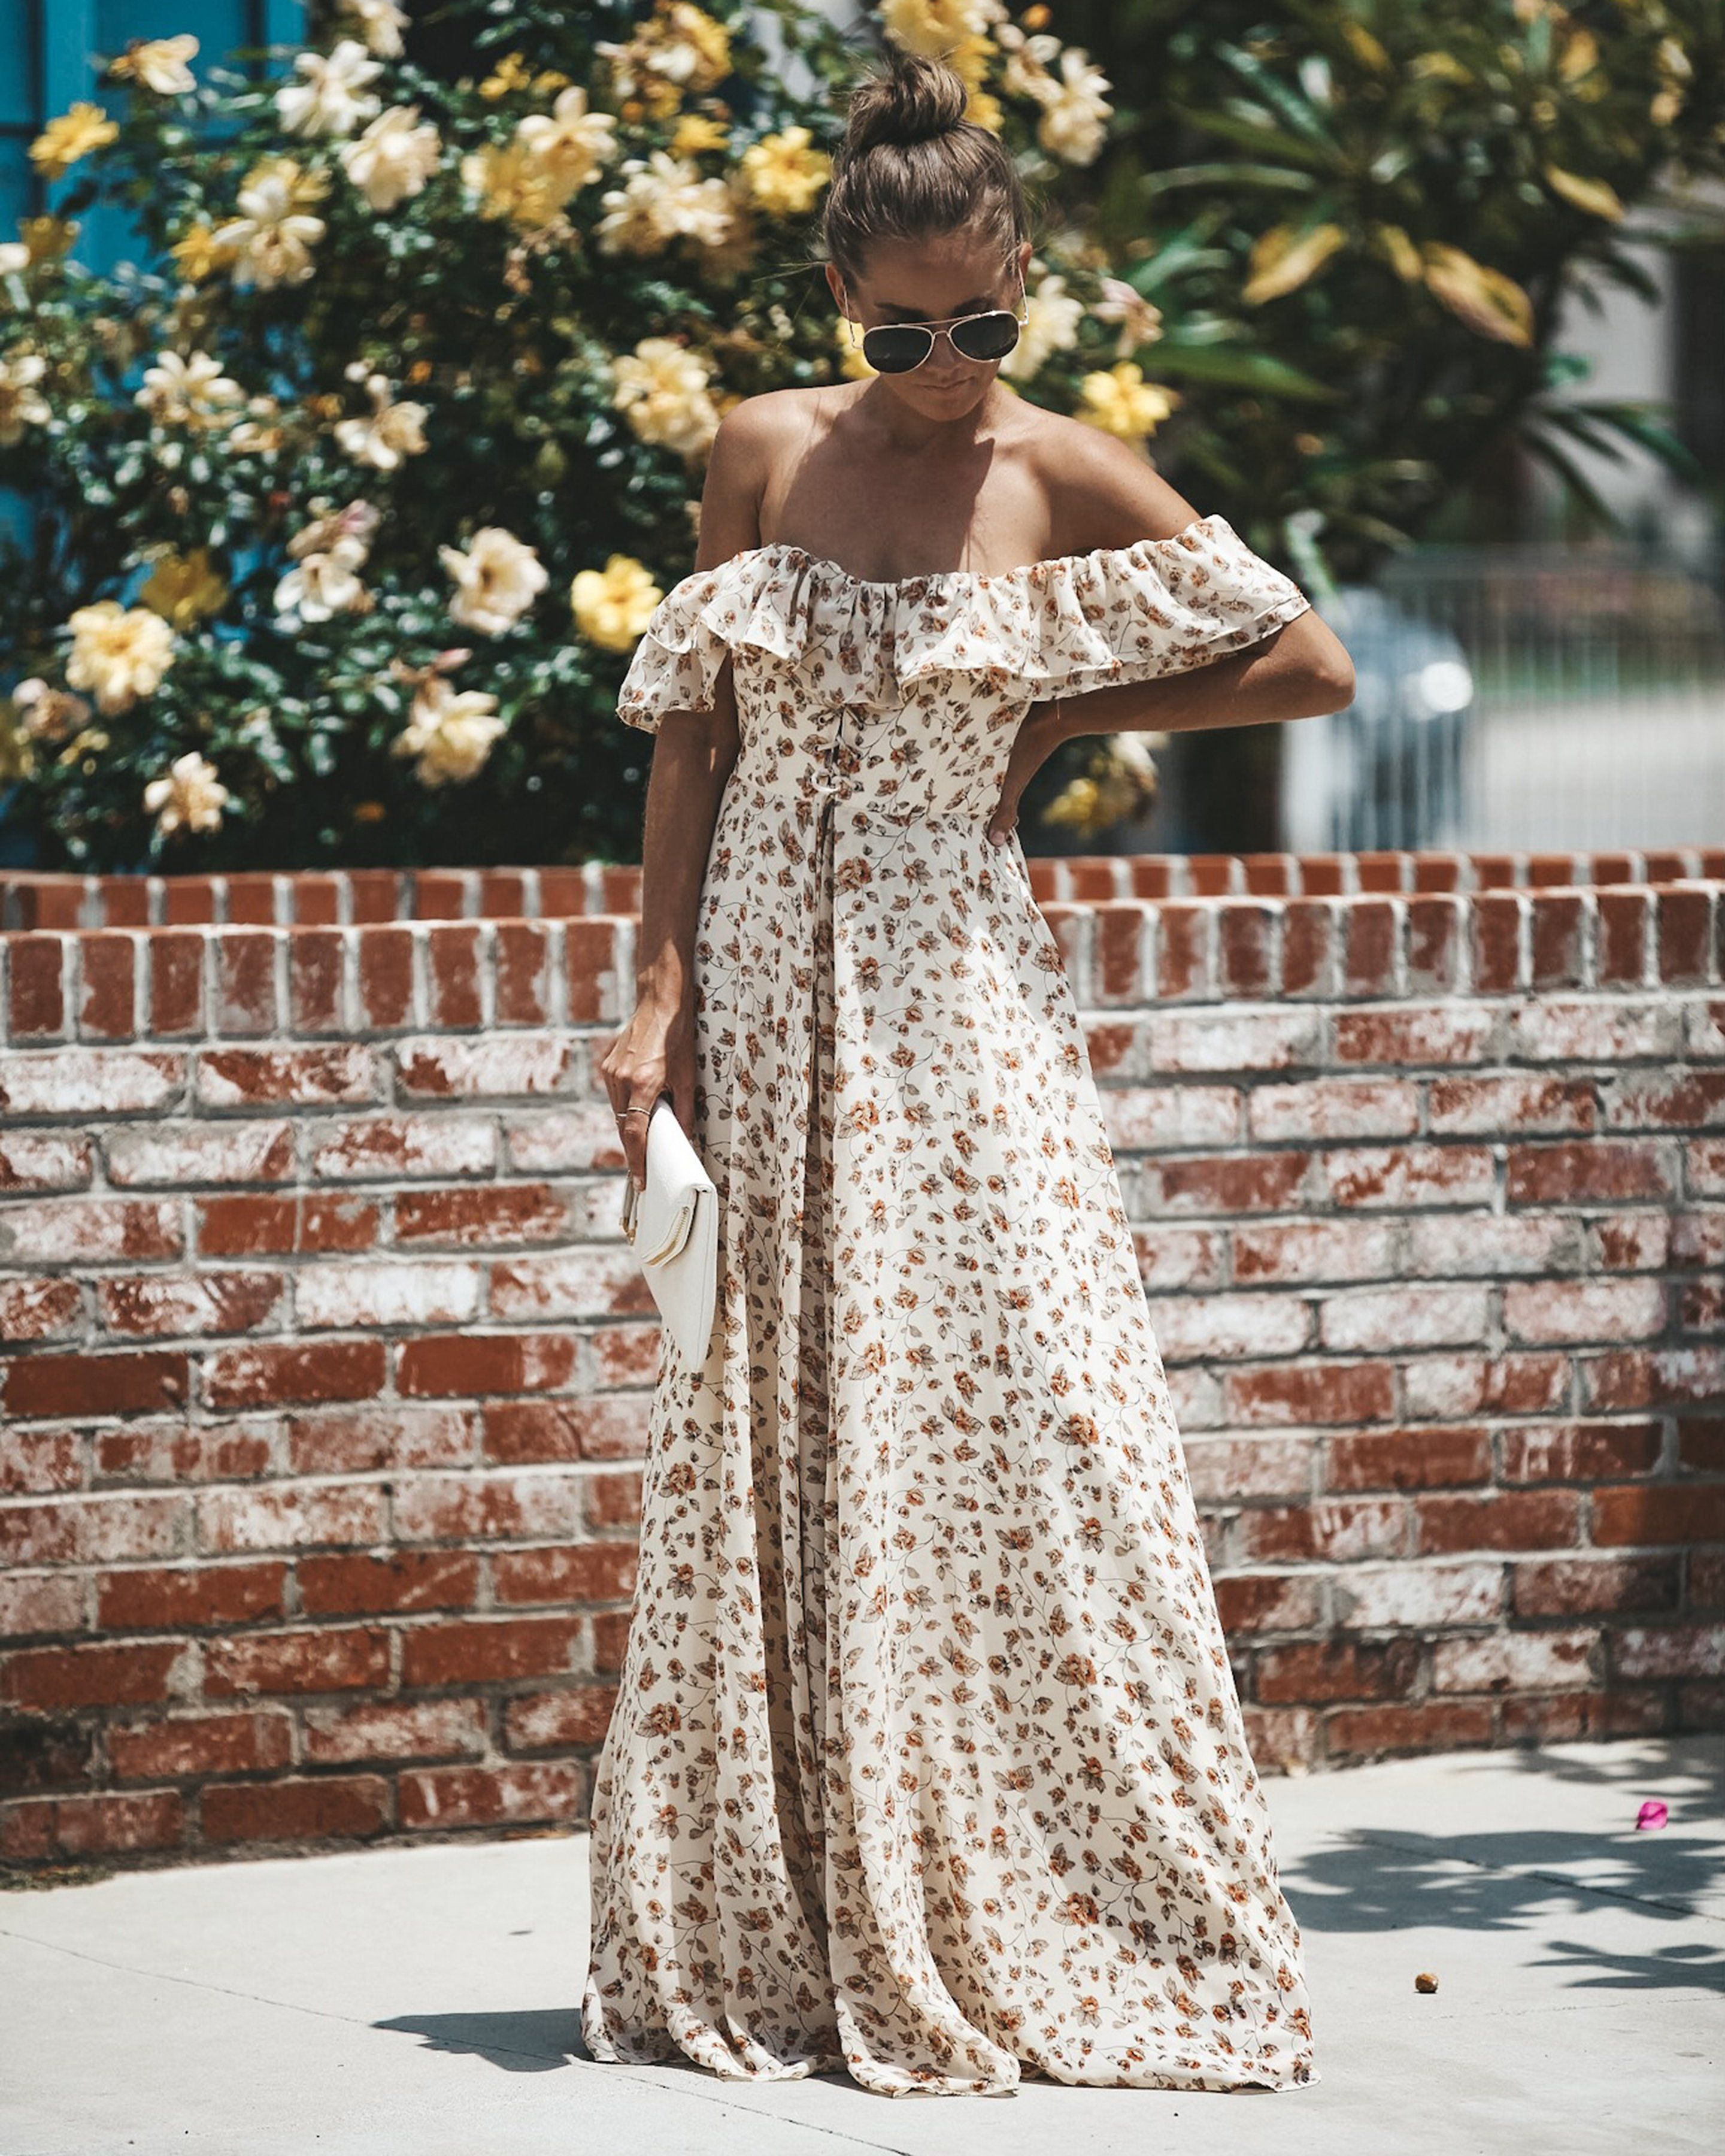 Gone With The Wind Off The Shoulder Maxi Dress Vici Collection Shoulder Maxi Dress Maxi Dress Photoshoot Dress [ 3600 x 2881 Pixel ]